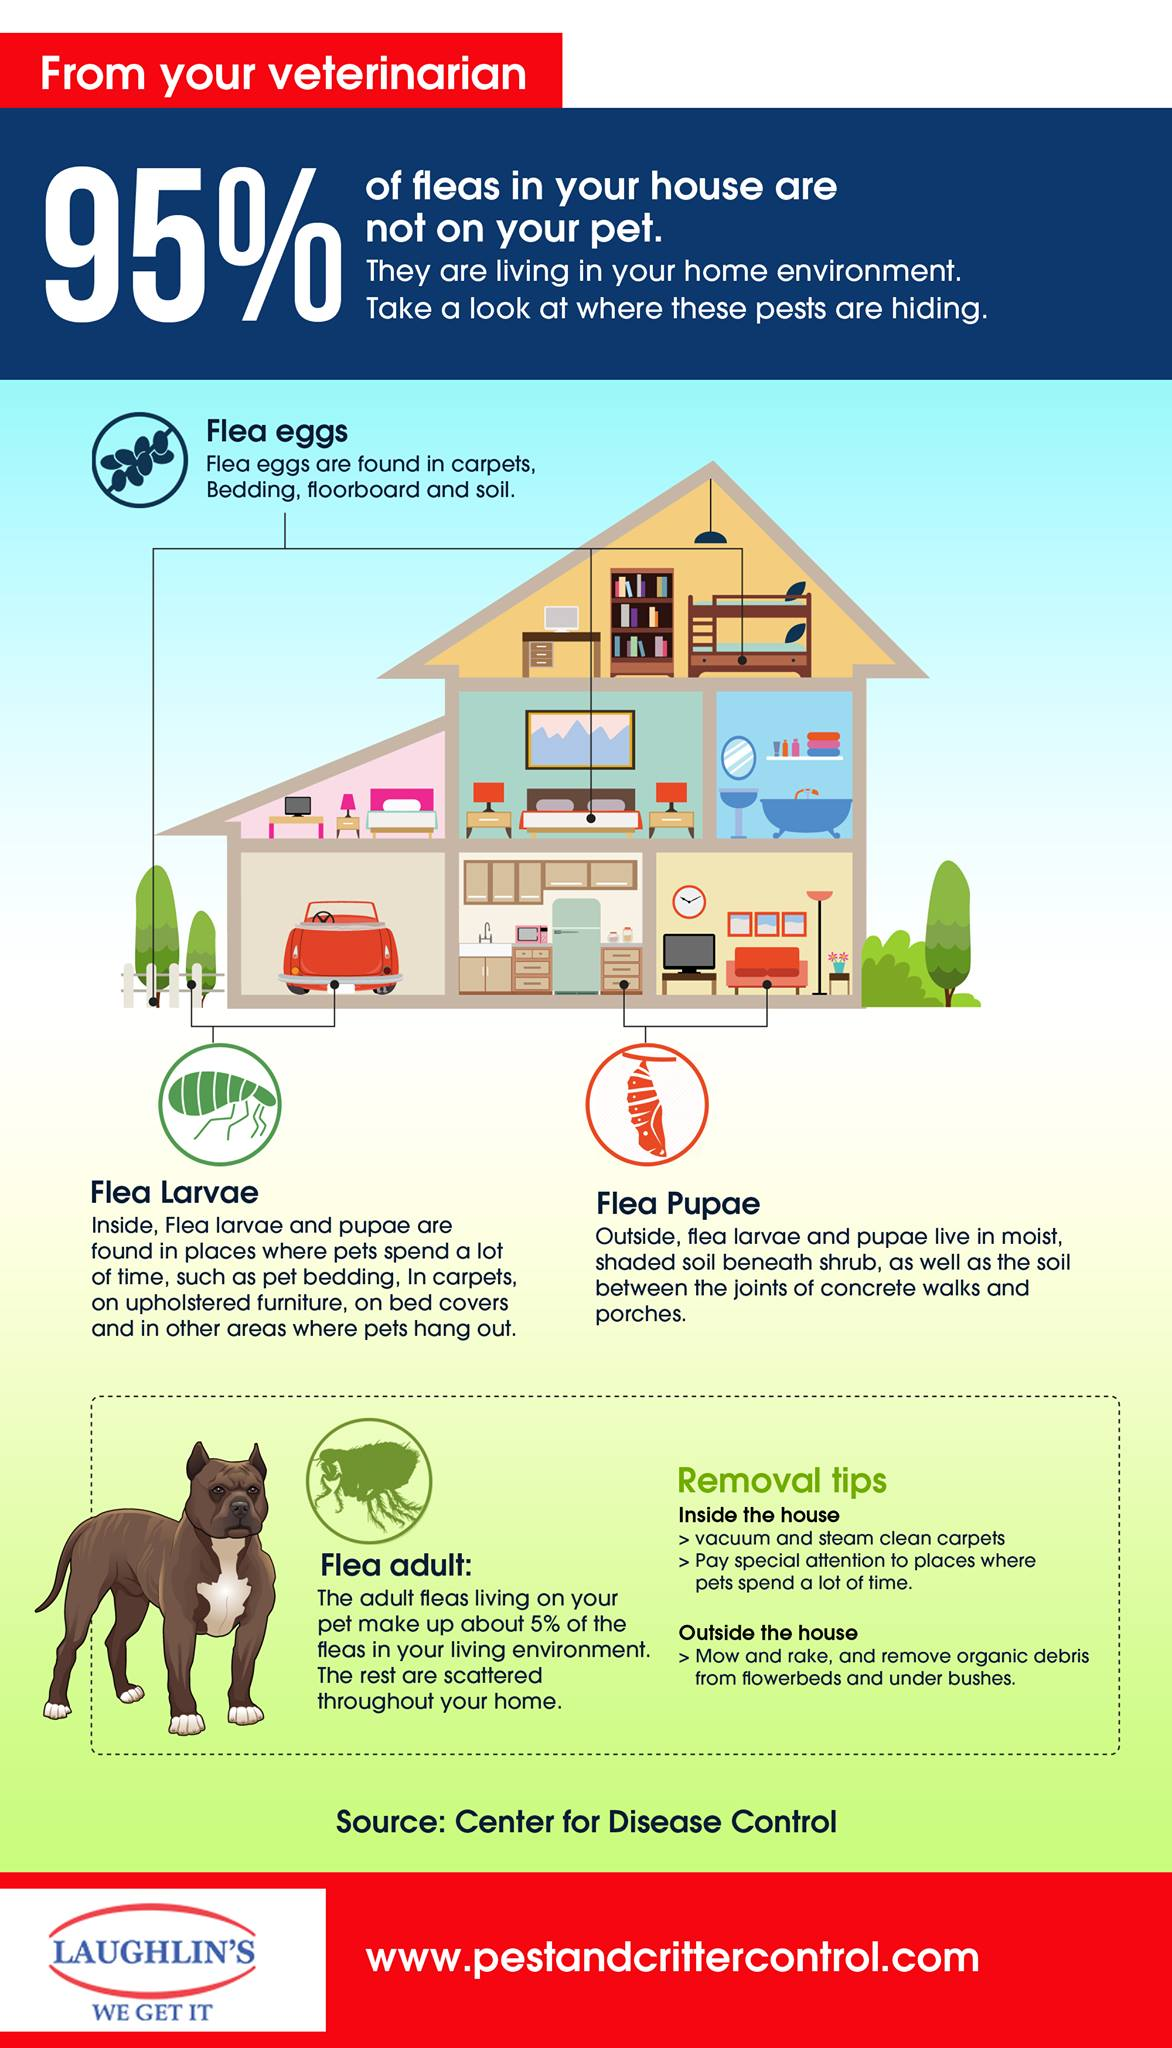 7 ways to get rid of fleas and ticks on your minnesota property in 7 ways to get rid of fleas and ticks on your minnesota property in 2017 ccuart Image collections